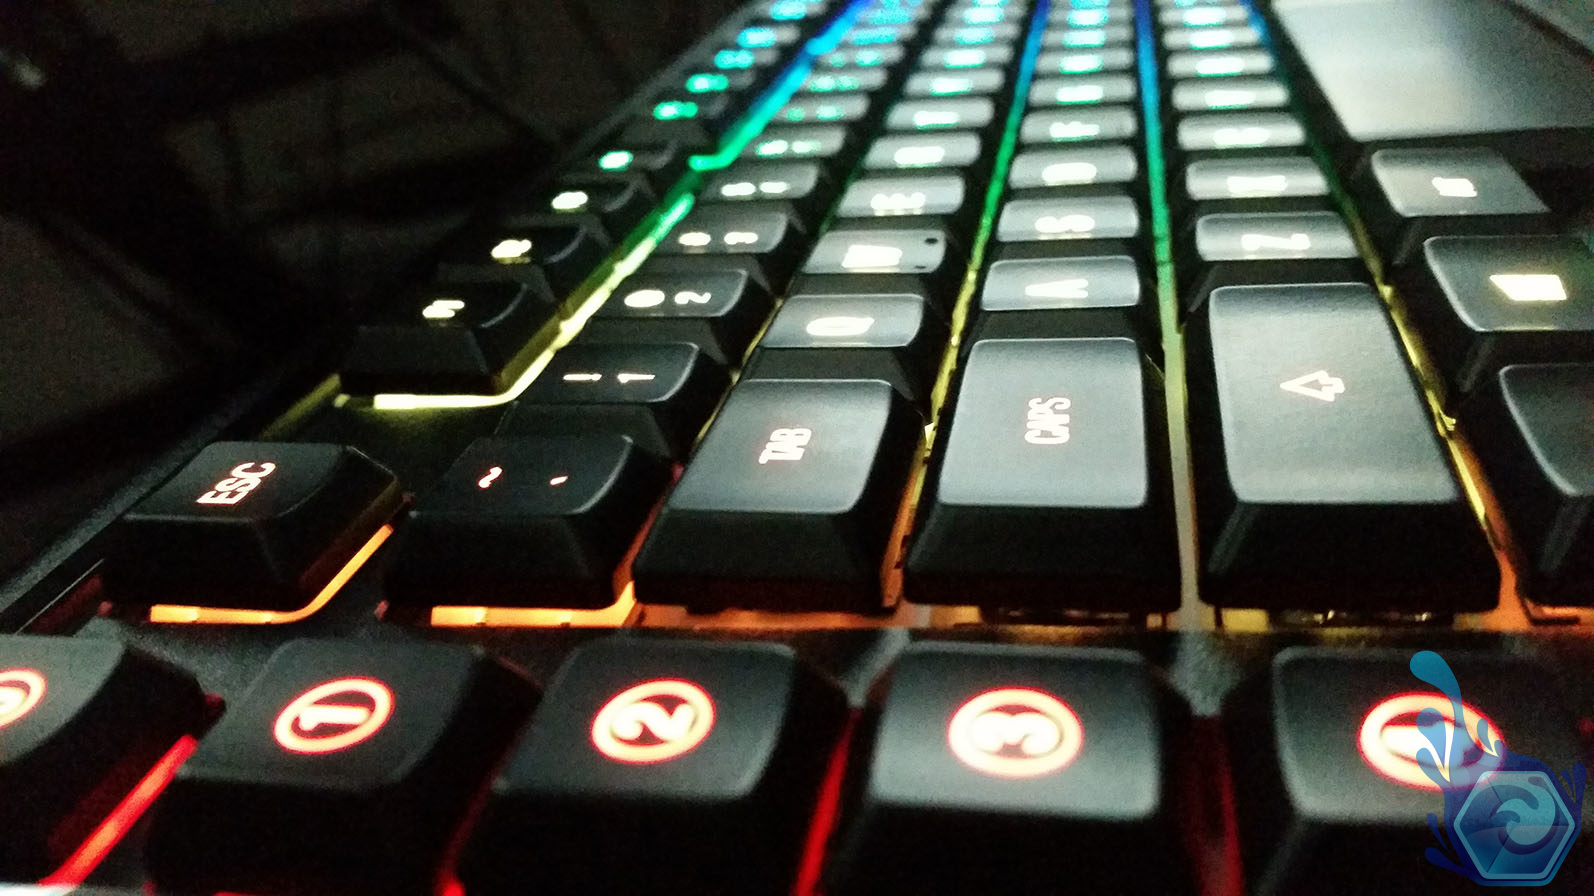 Steelseries M800 Review